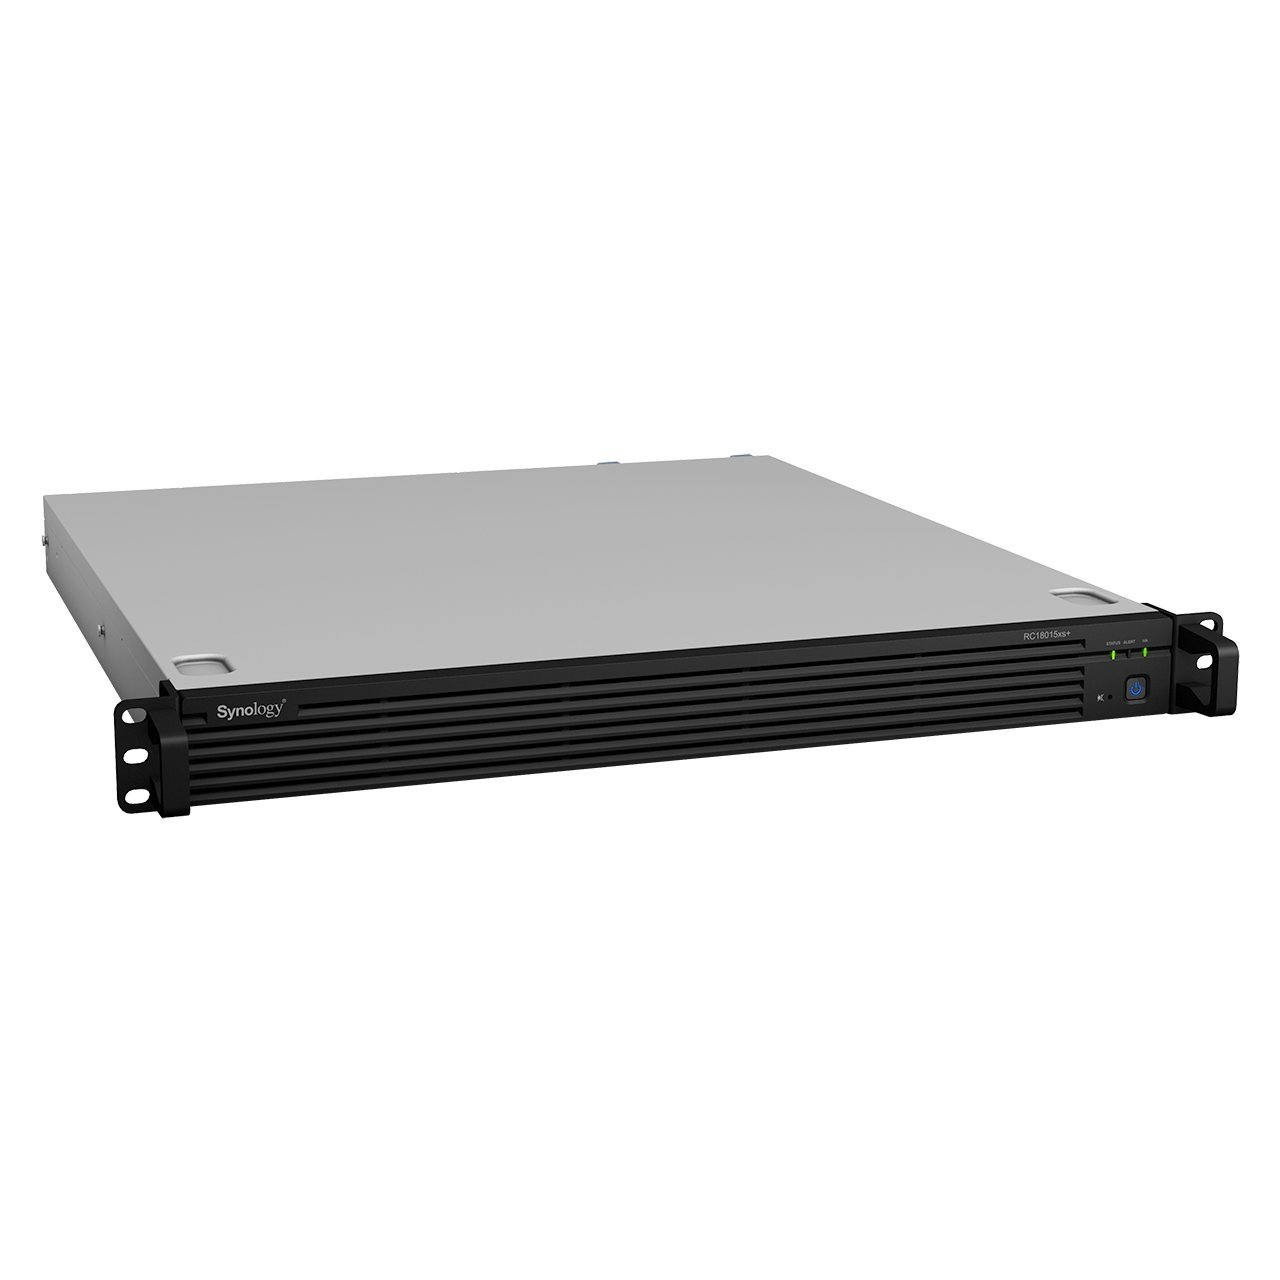 Synology Rack Station Network Attached Storage with iSCSI (RC18015xs+) by Synology